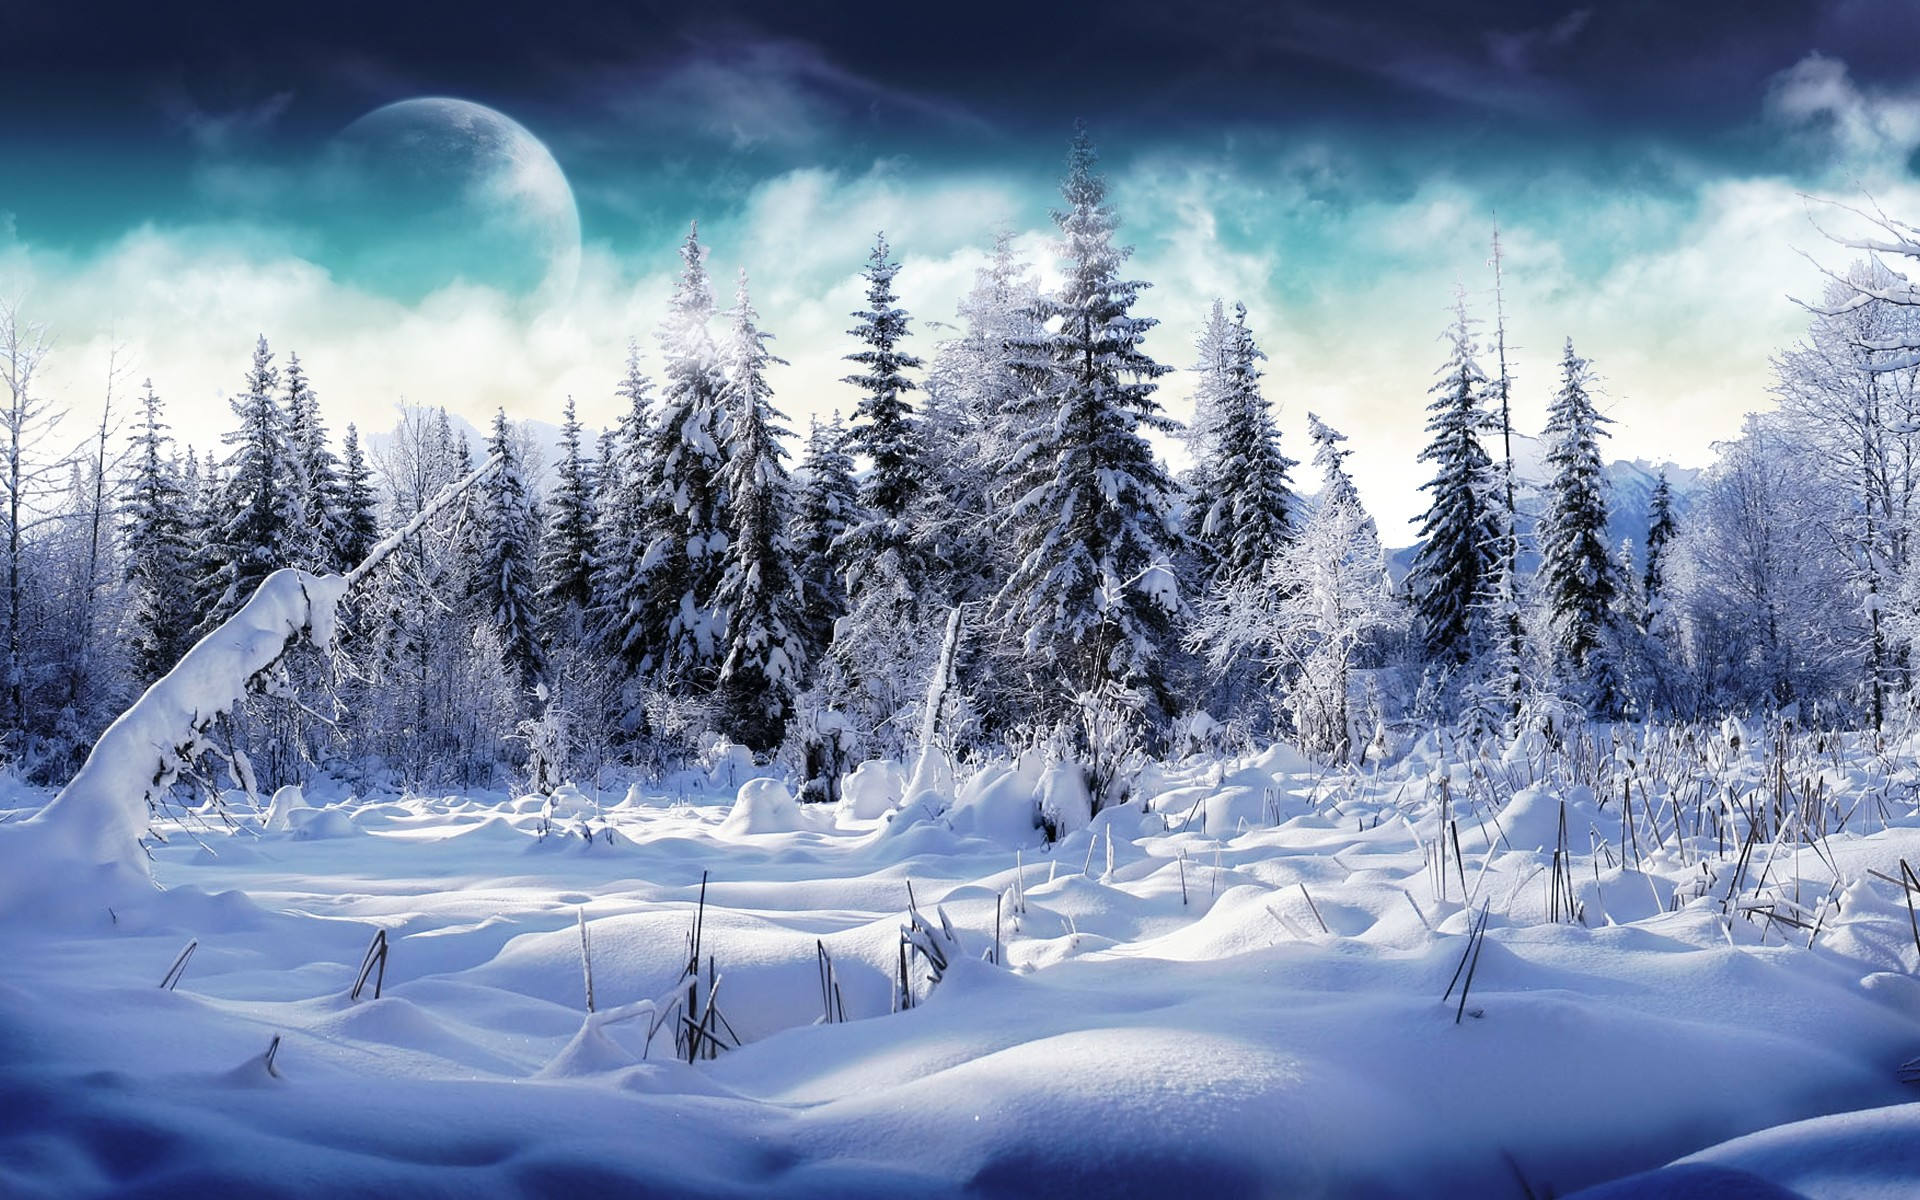 Winter Background Images Wallpaper